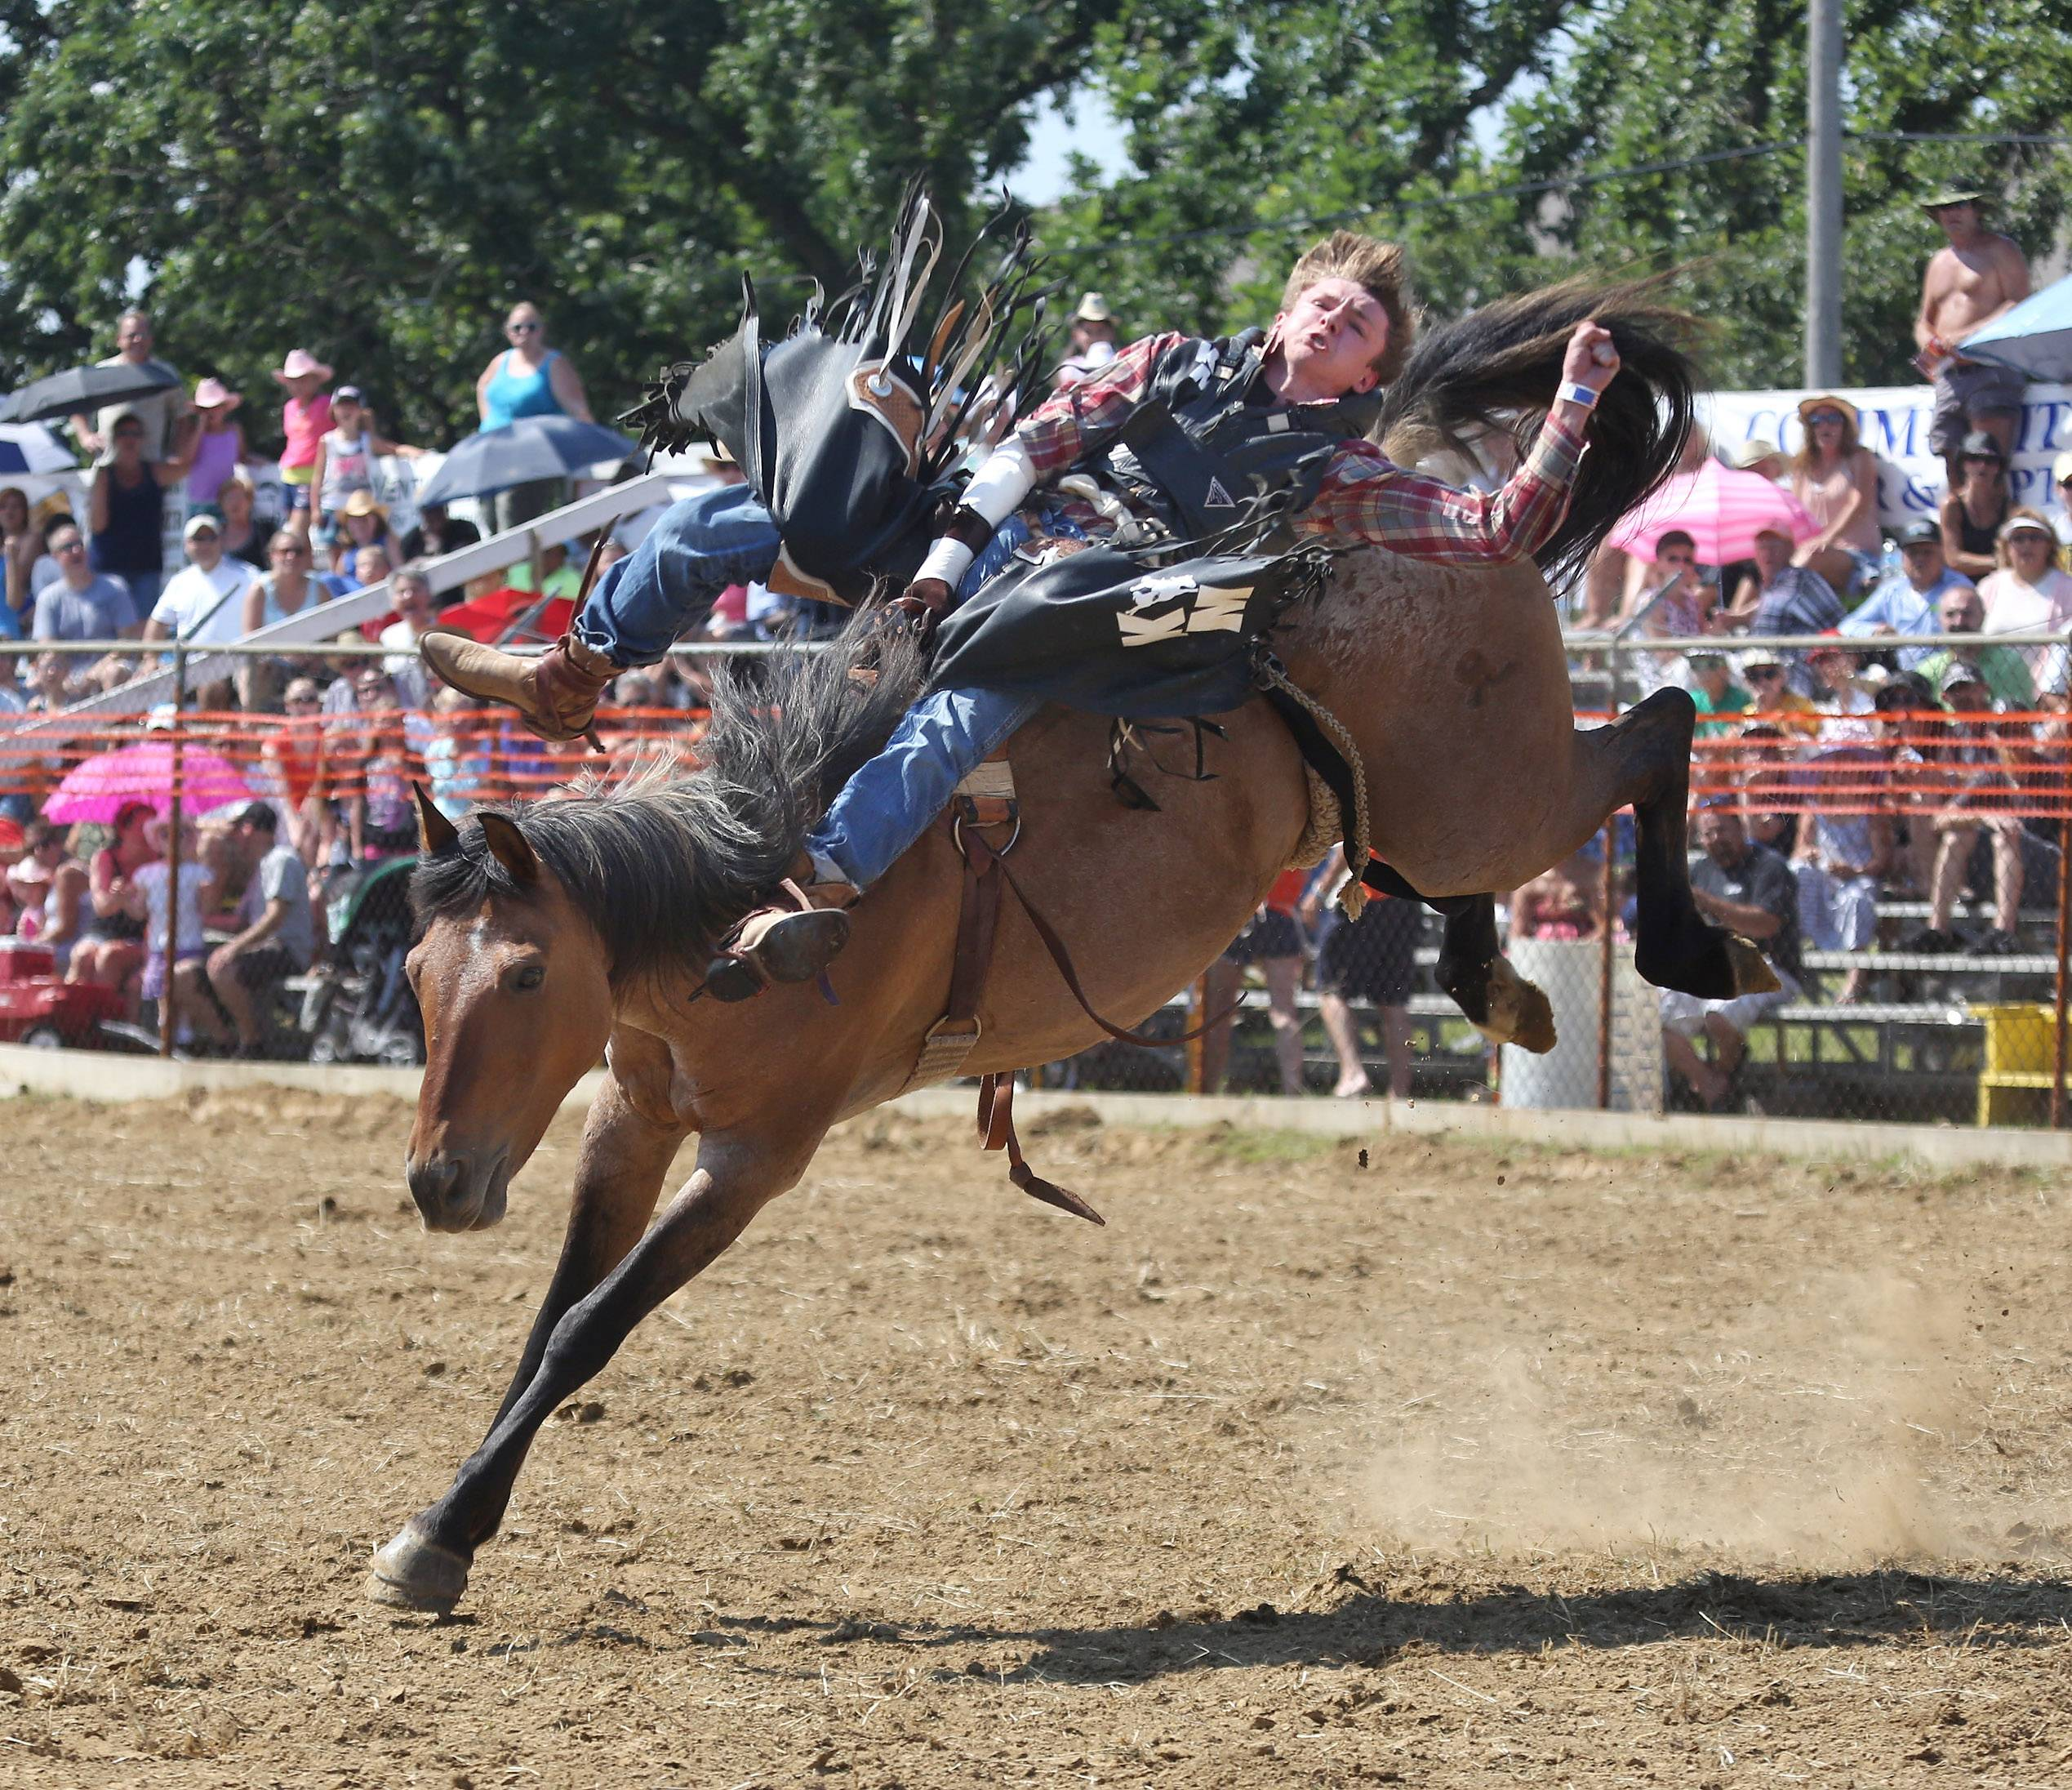 Mark Kreder, Jr. rides a bareback bronc during last year's IPRA Championship Wauconda Rodeo at Green Oaks Rodeo Grounds. The Wauconda Area Chamber of Commerce sponsored the event that featured a mechanical bull, pony rides and calf roping, as well as the rodeo show.